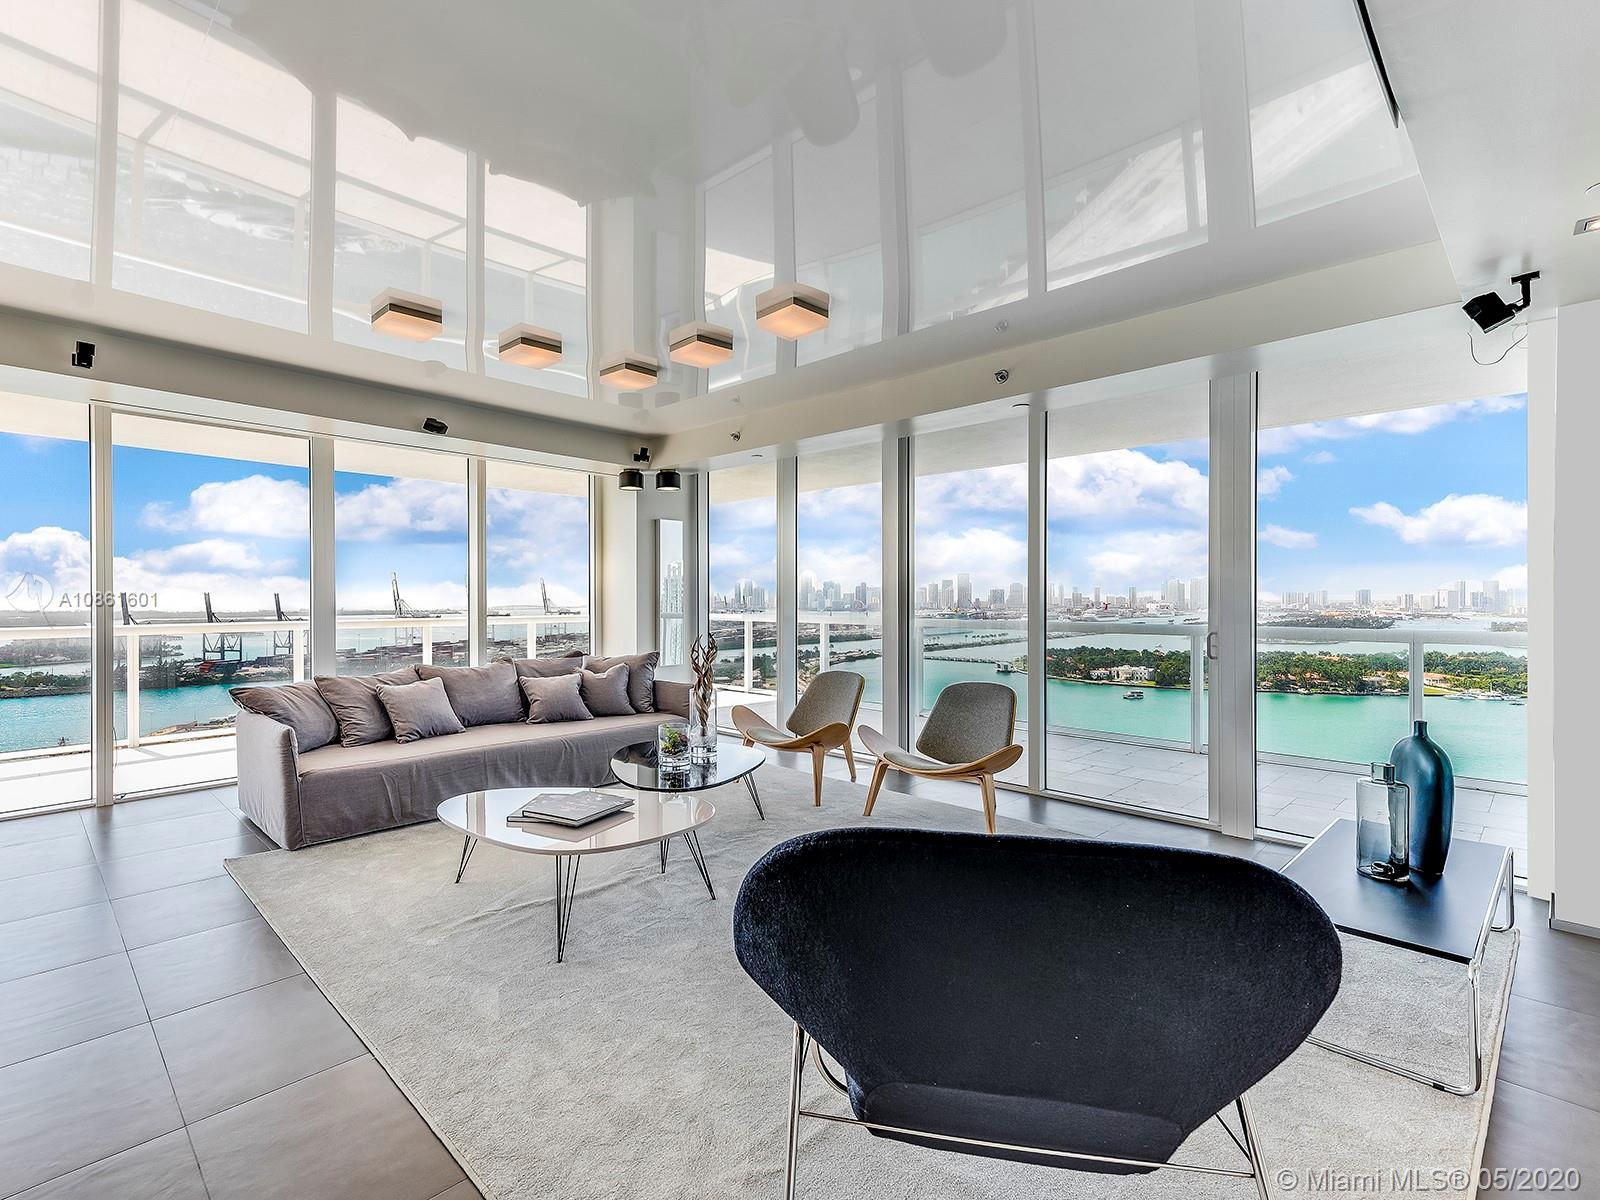 Most desirable line 01 at ICON South Beach. Professionally reconfigured to a unique 3 bedroom 3 bath